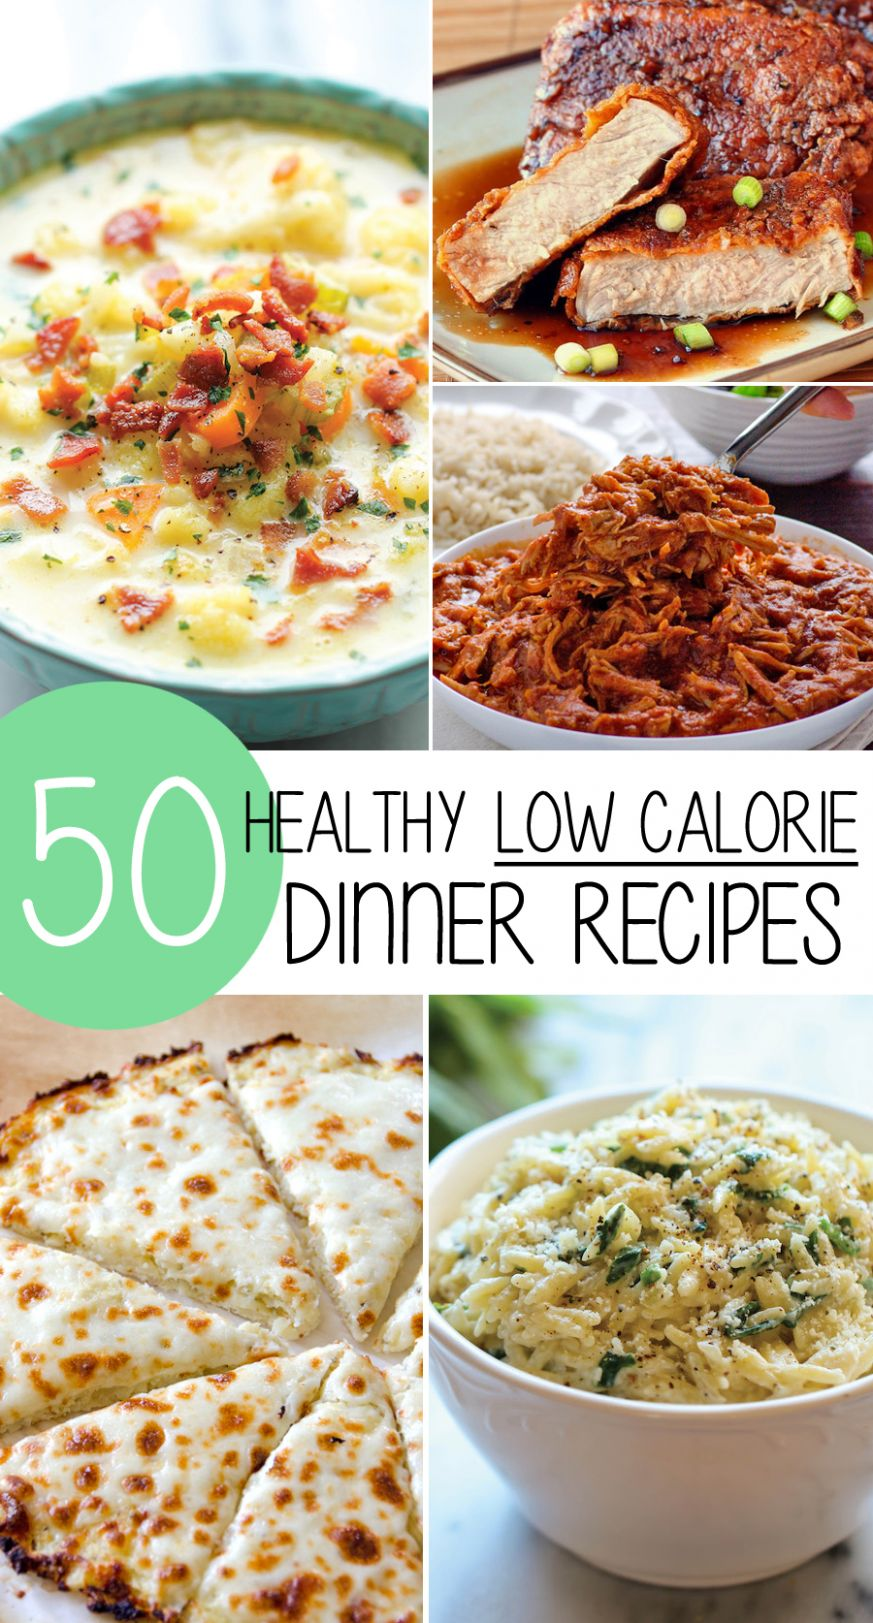 10 Healthy Low Calorie Weight Loss Dinner Recipes! – TrimmedandToned - Recipes For Weight Loss Simple